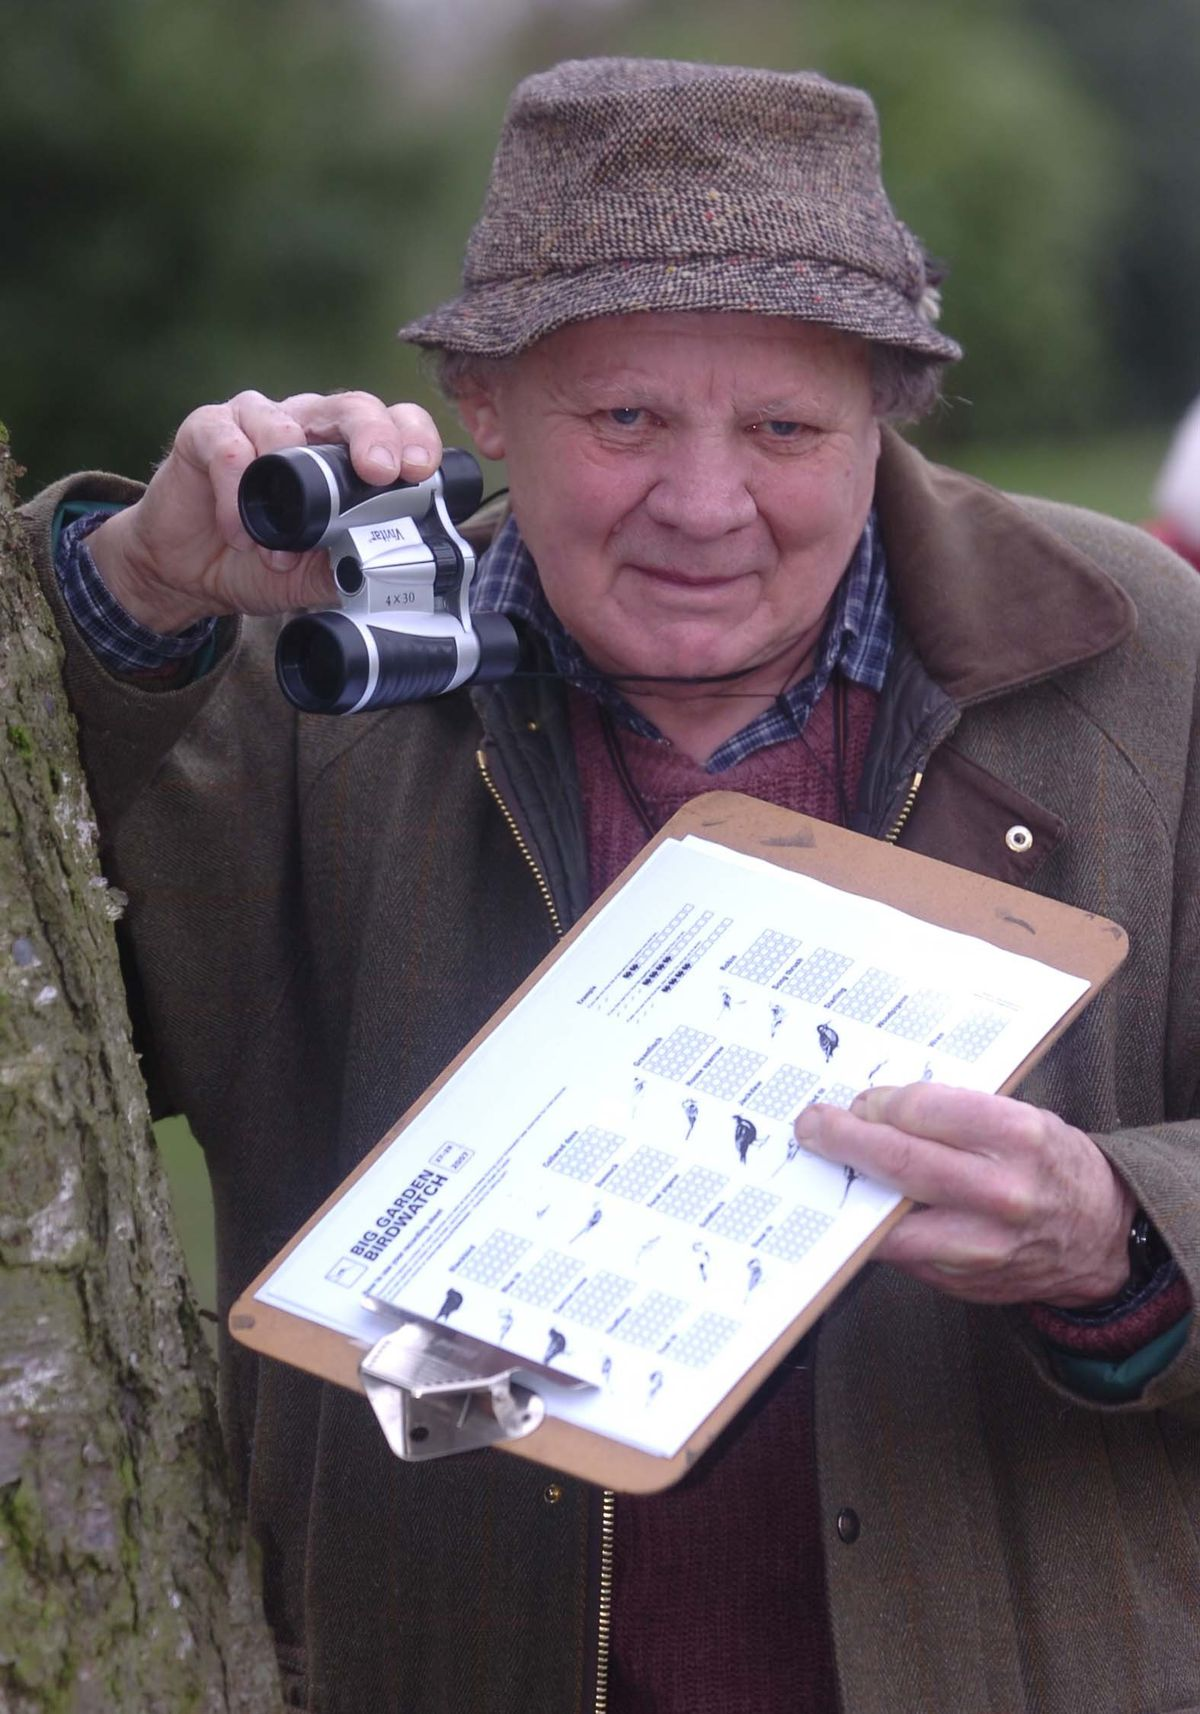 A keen ornithologist, Mr Lloyd was pictured here during birdwatching week at Barnford Park in Oldbury